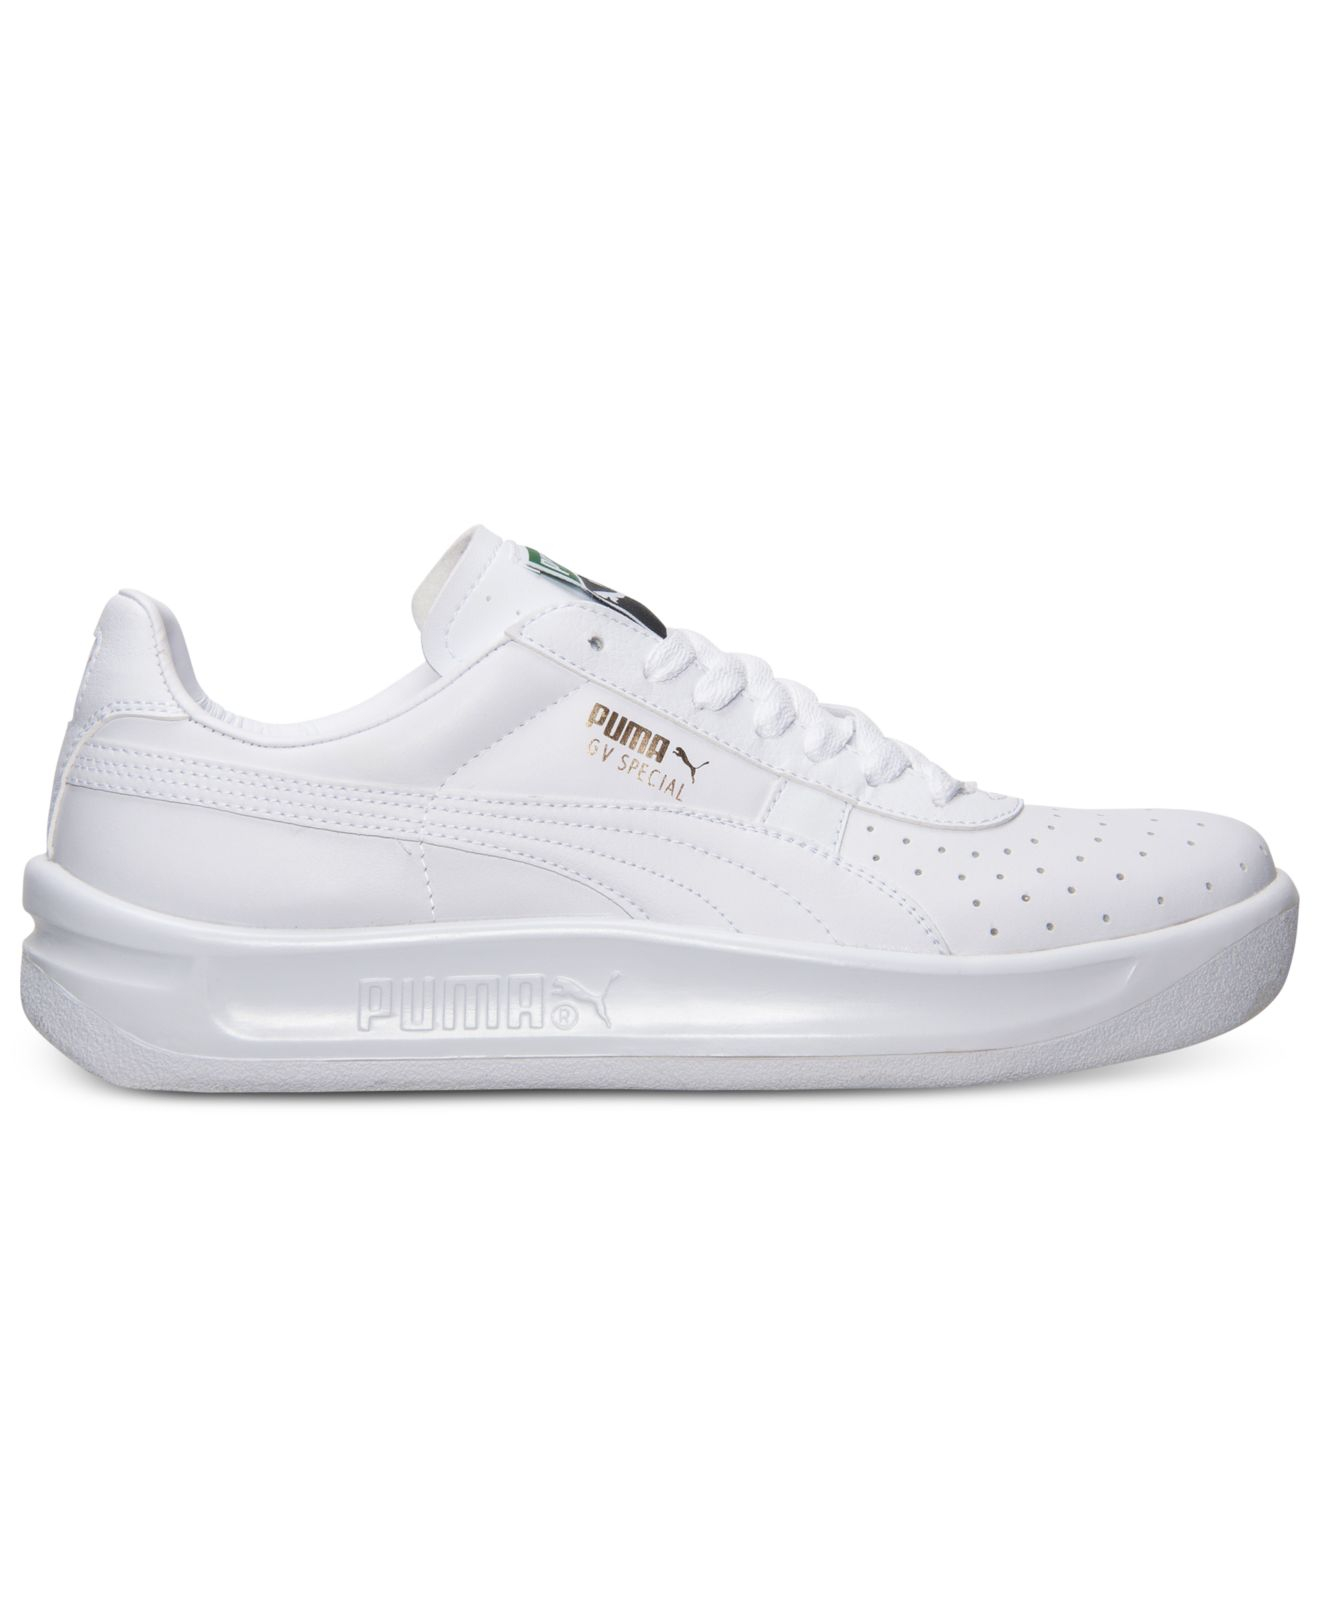 a546cafe9a4 Lyst - PUMA Men s The Gv Special Casual Sneakers From Finish Line in ...